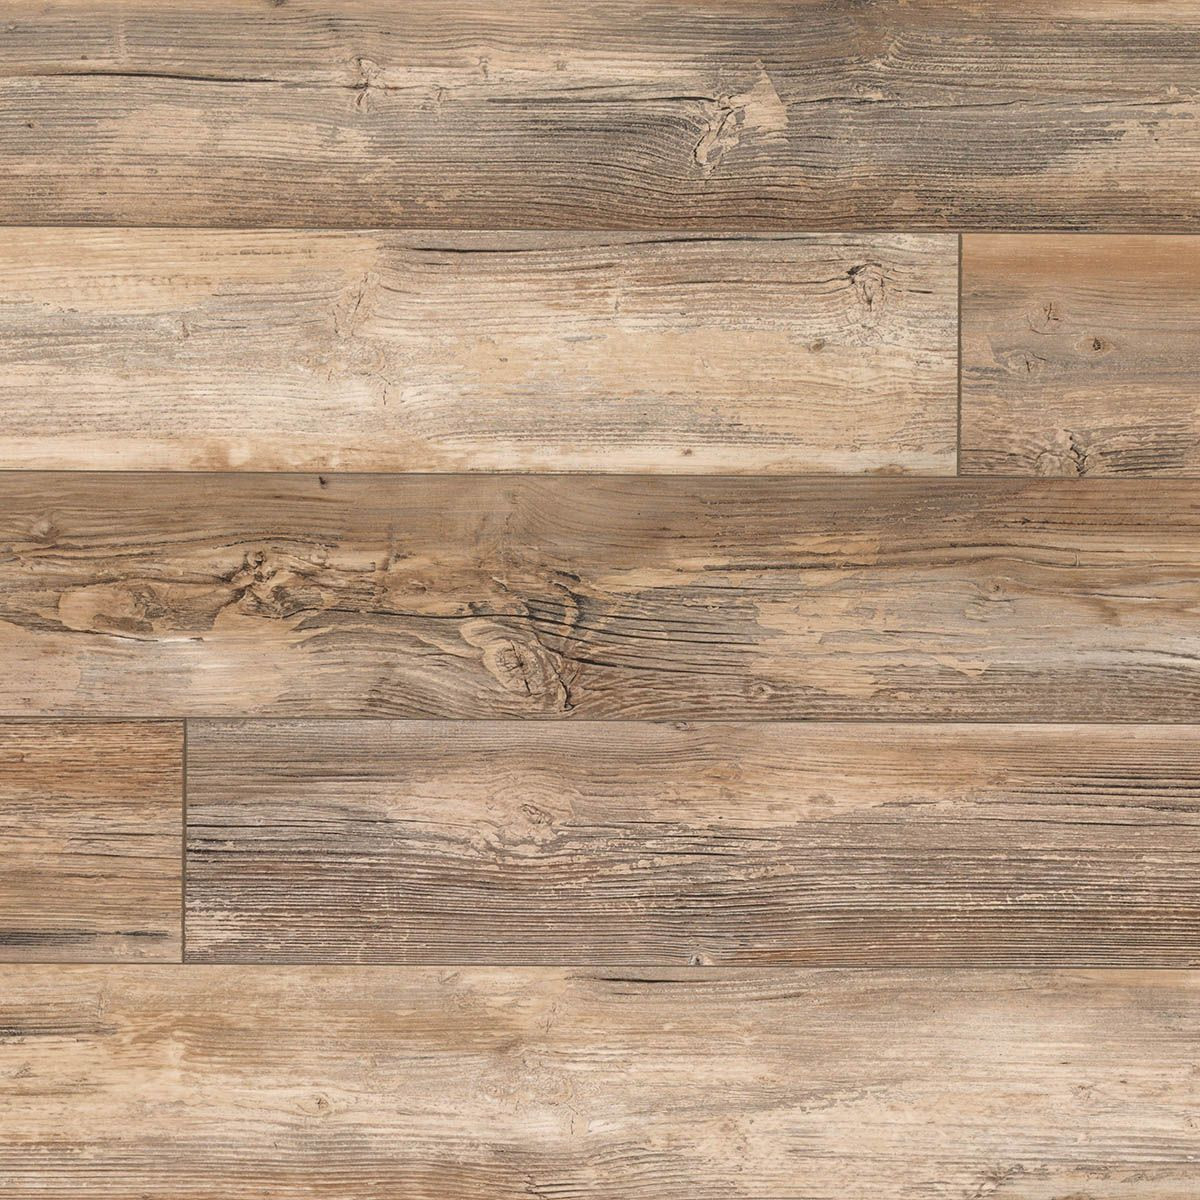 bruce solid maple hardwood flooring of flooring gallery mozzone lumber for a warm toffee brown with gray accents just like these planks theyre perfect for elegant comfortable looks gorgeous distressed laminate floor